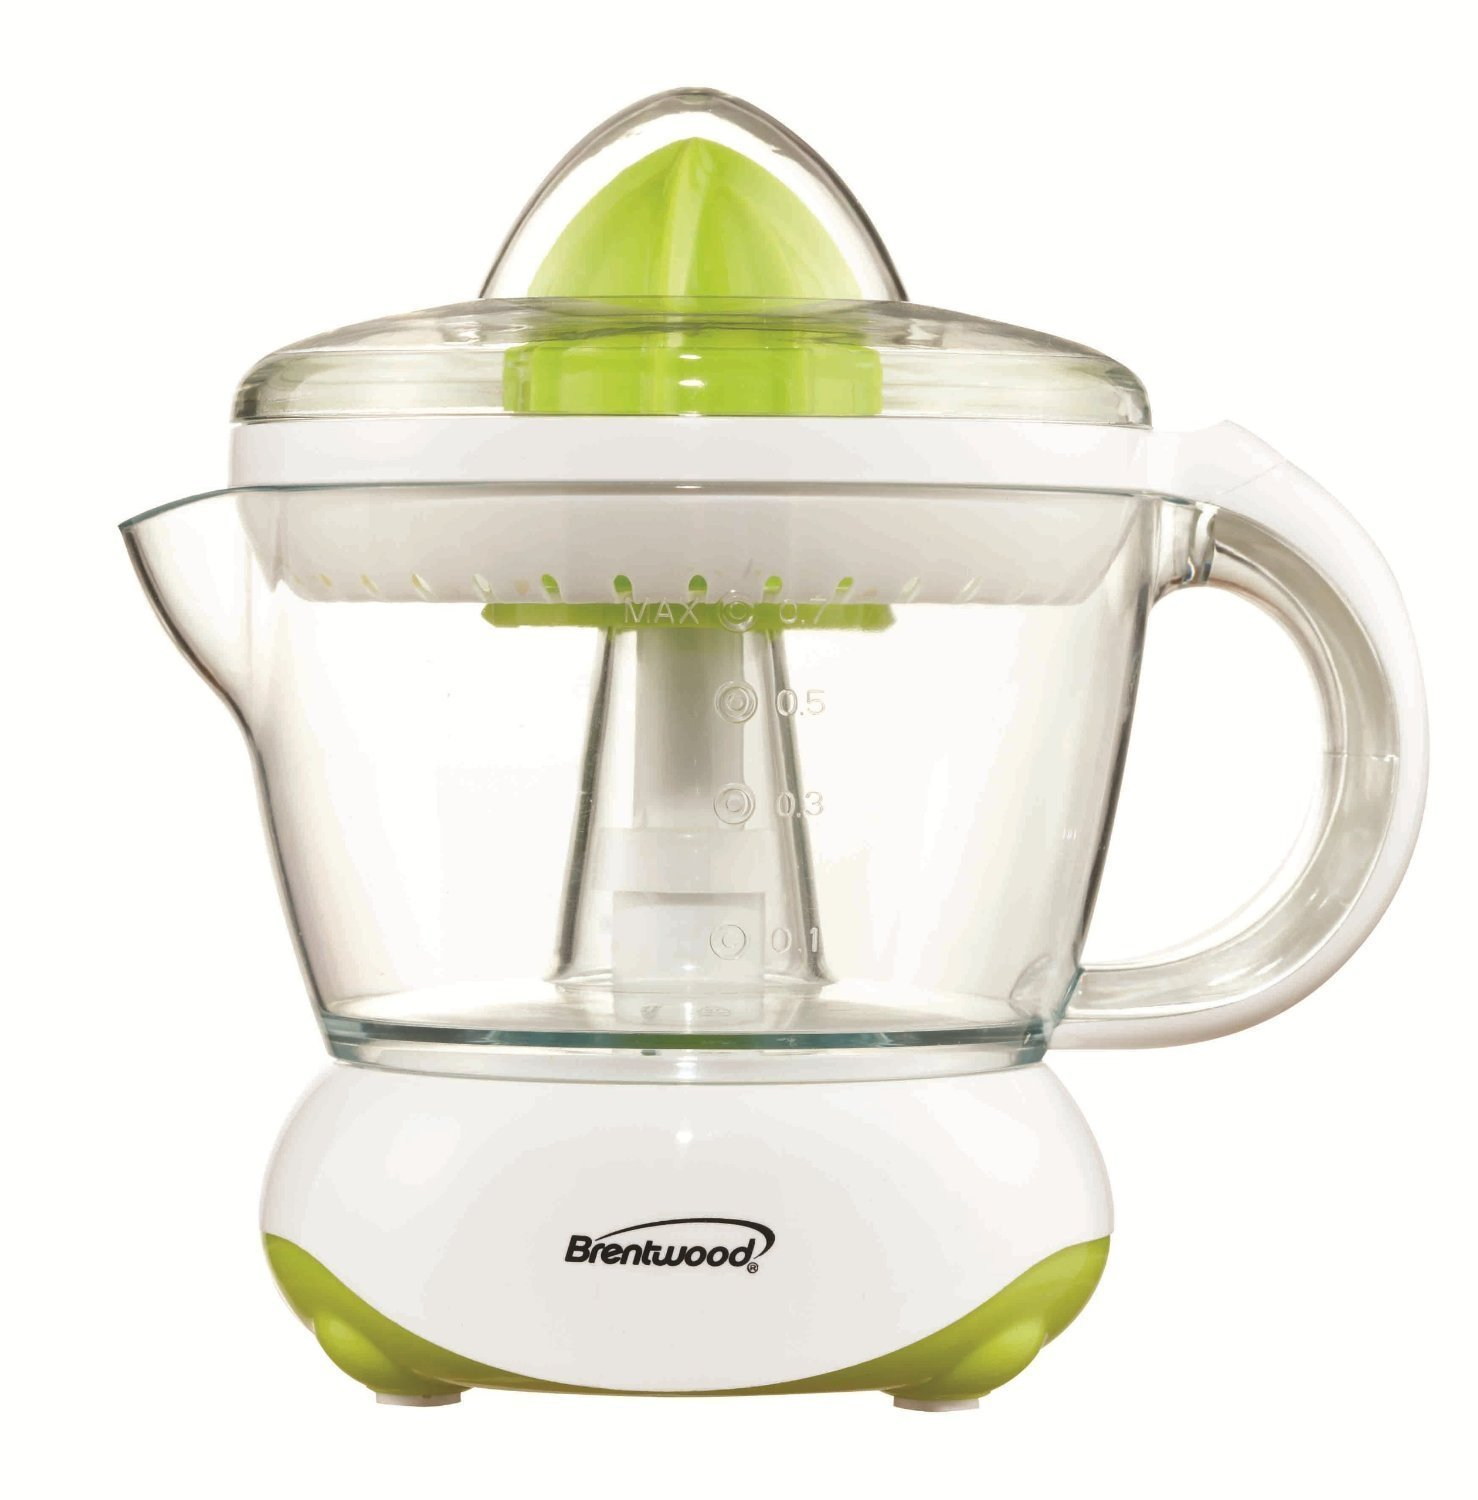 Home N Kitchenware Collection Electric Citrus Squeezer/Juicer, 24 oz/ .7L Capacity, Removable Parts, Power Motor of 25 Watts COMIN18JU037950